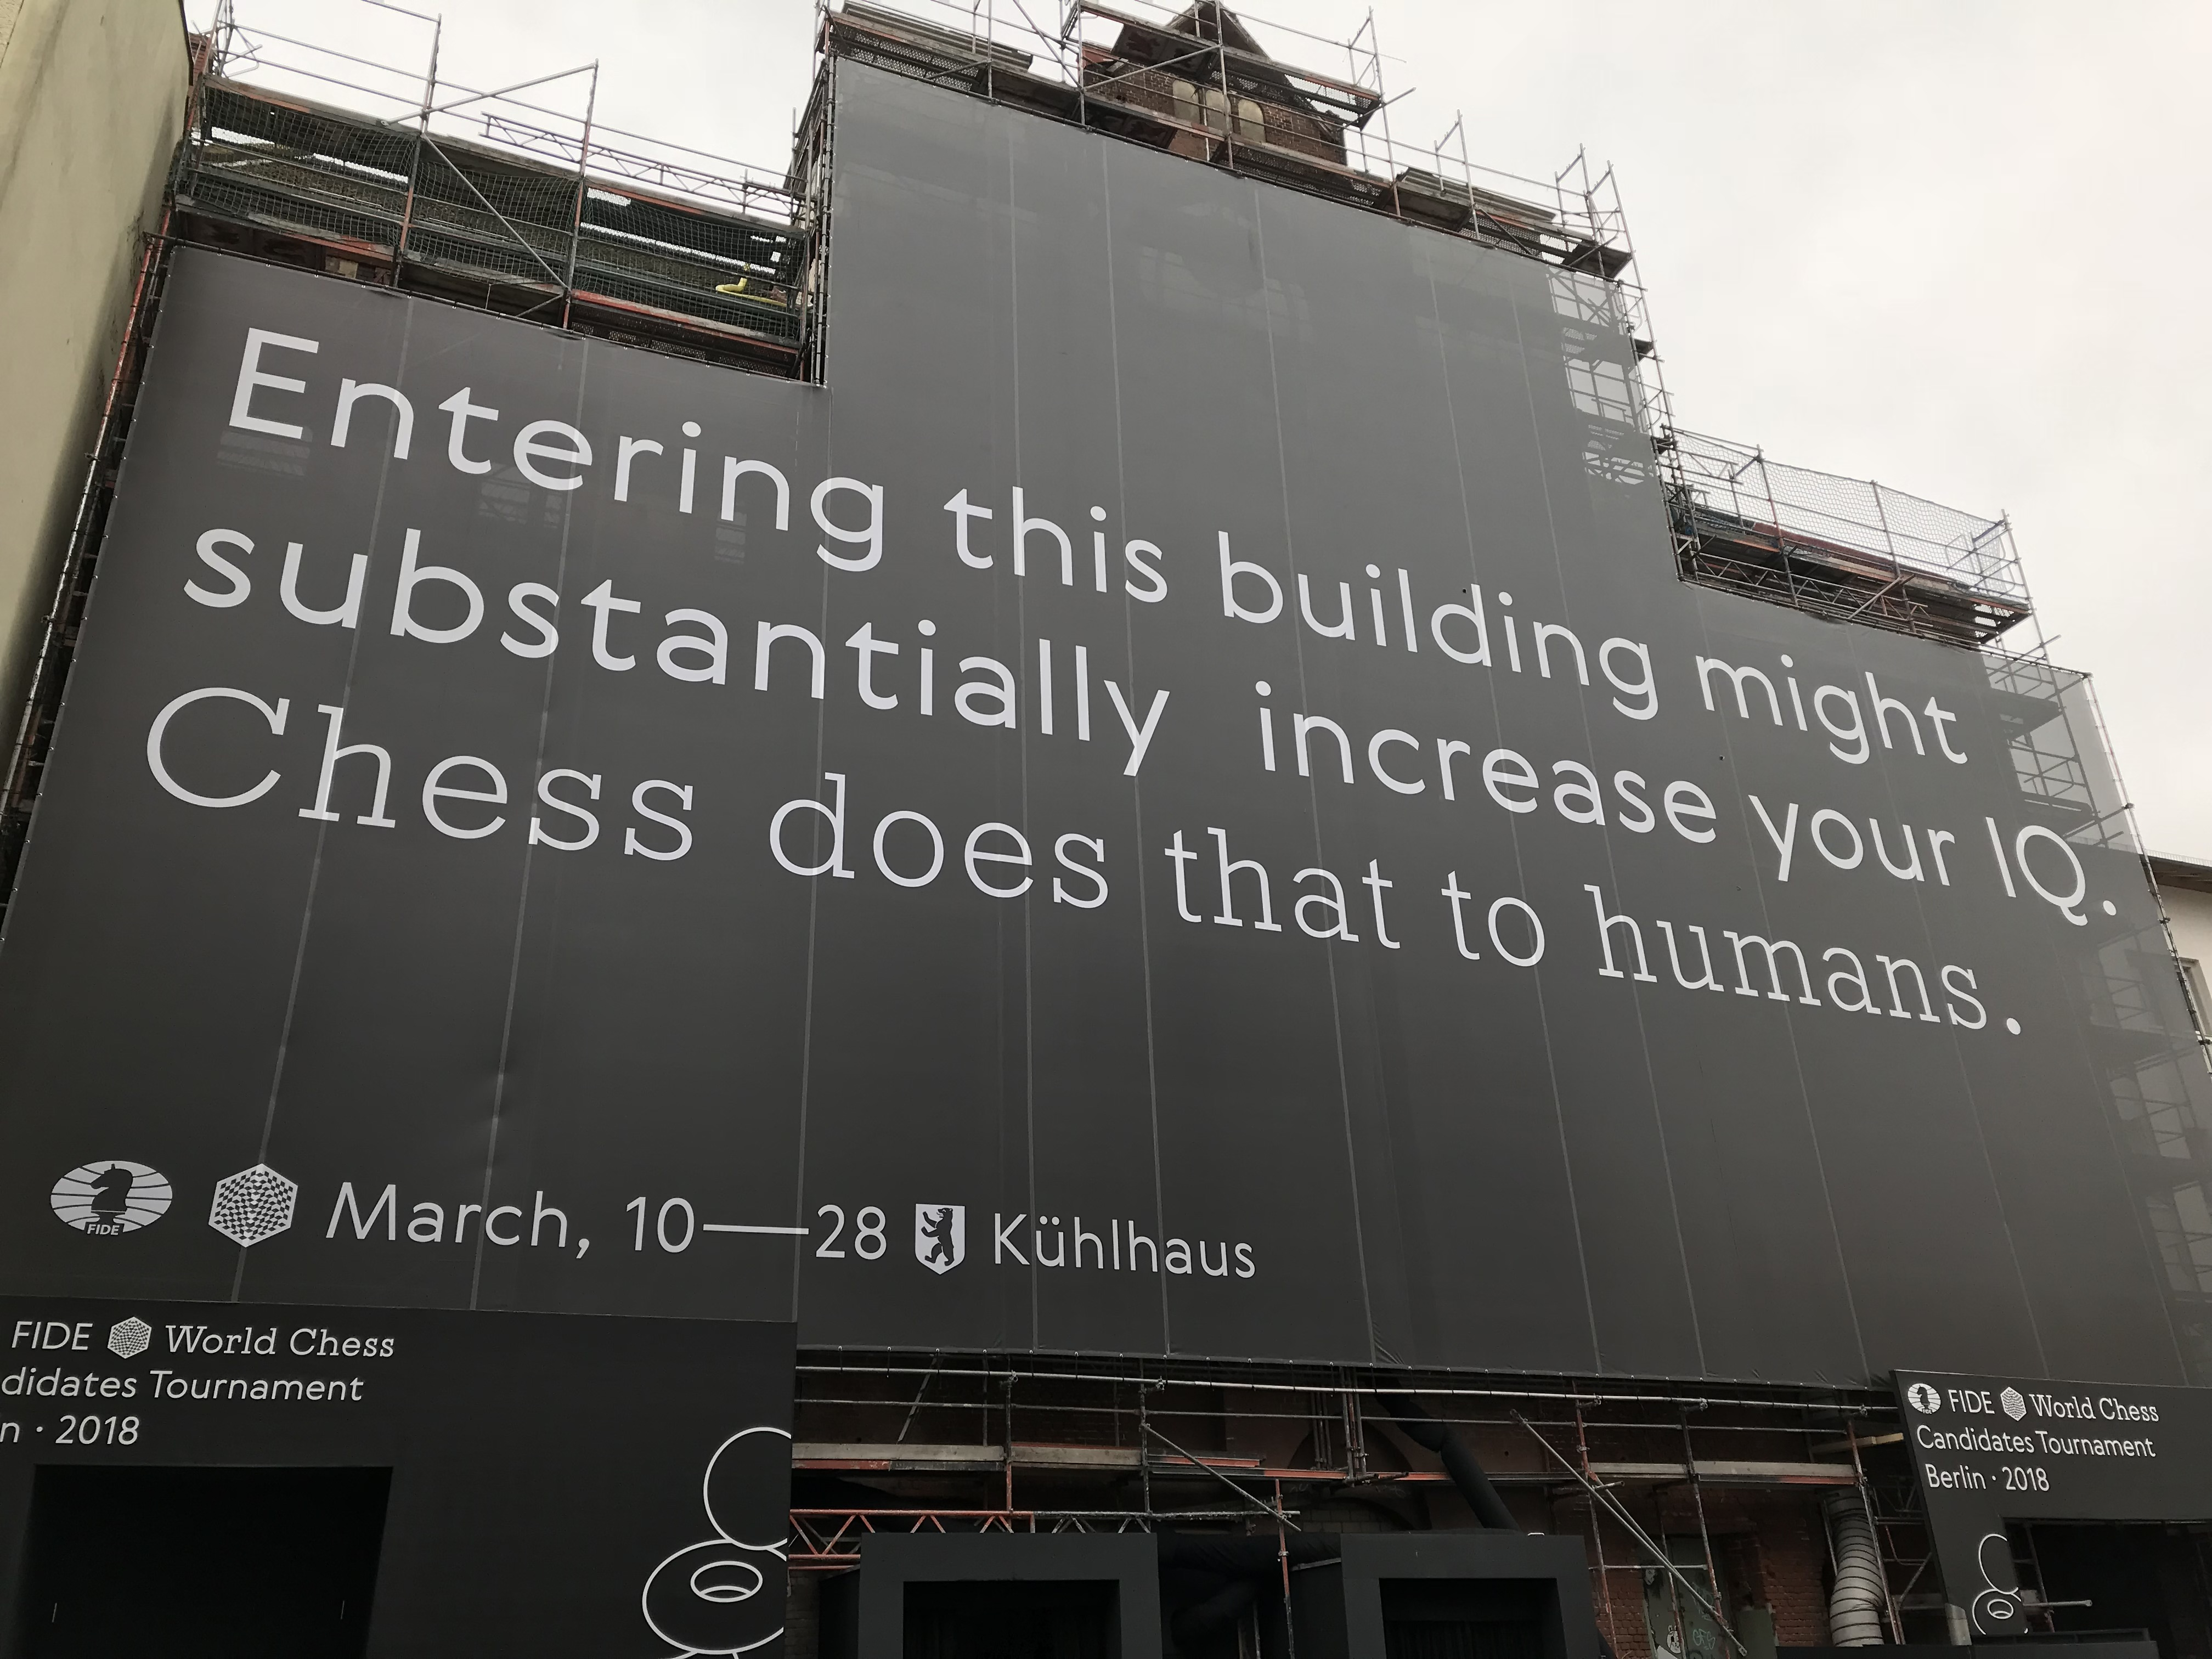 Quote on the Outside of the Building